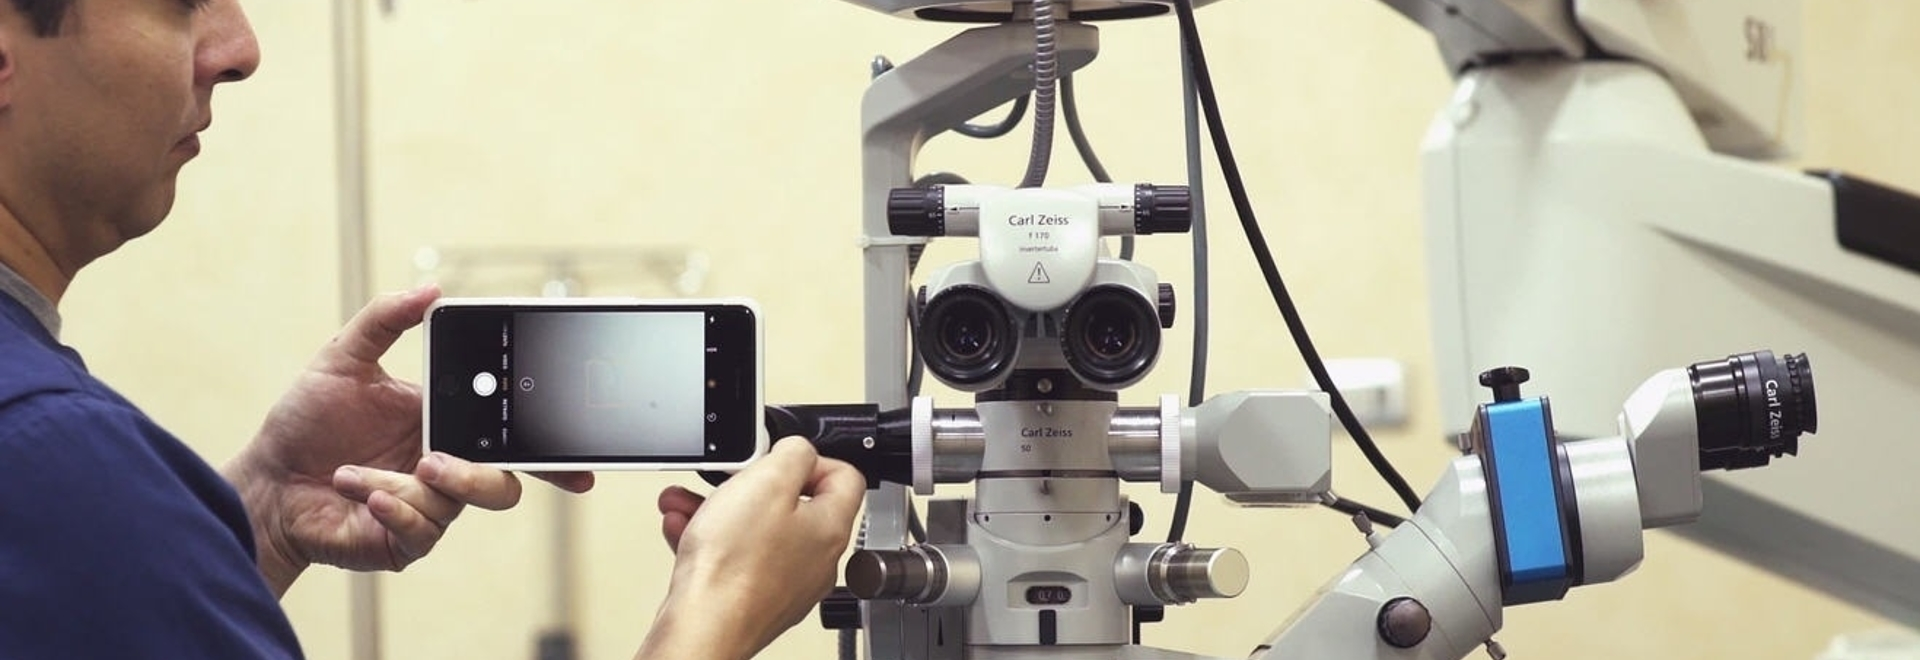 MicroREC is capable of attaching any smartphone to most of the microscopes on the market and filming microscopic operations.